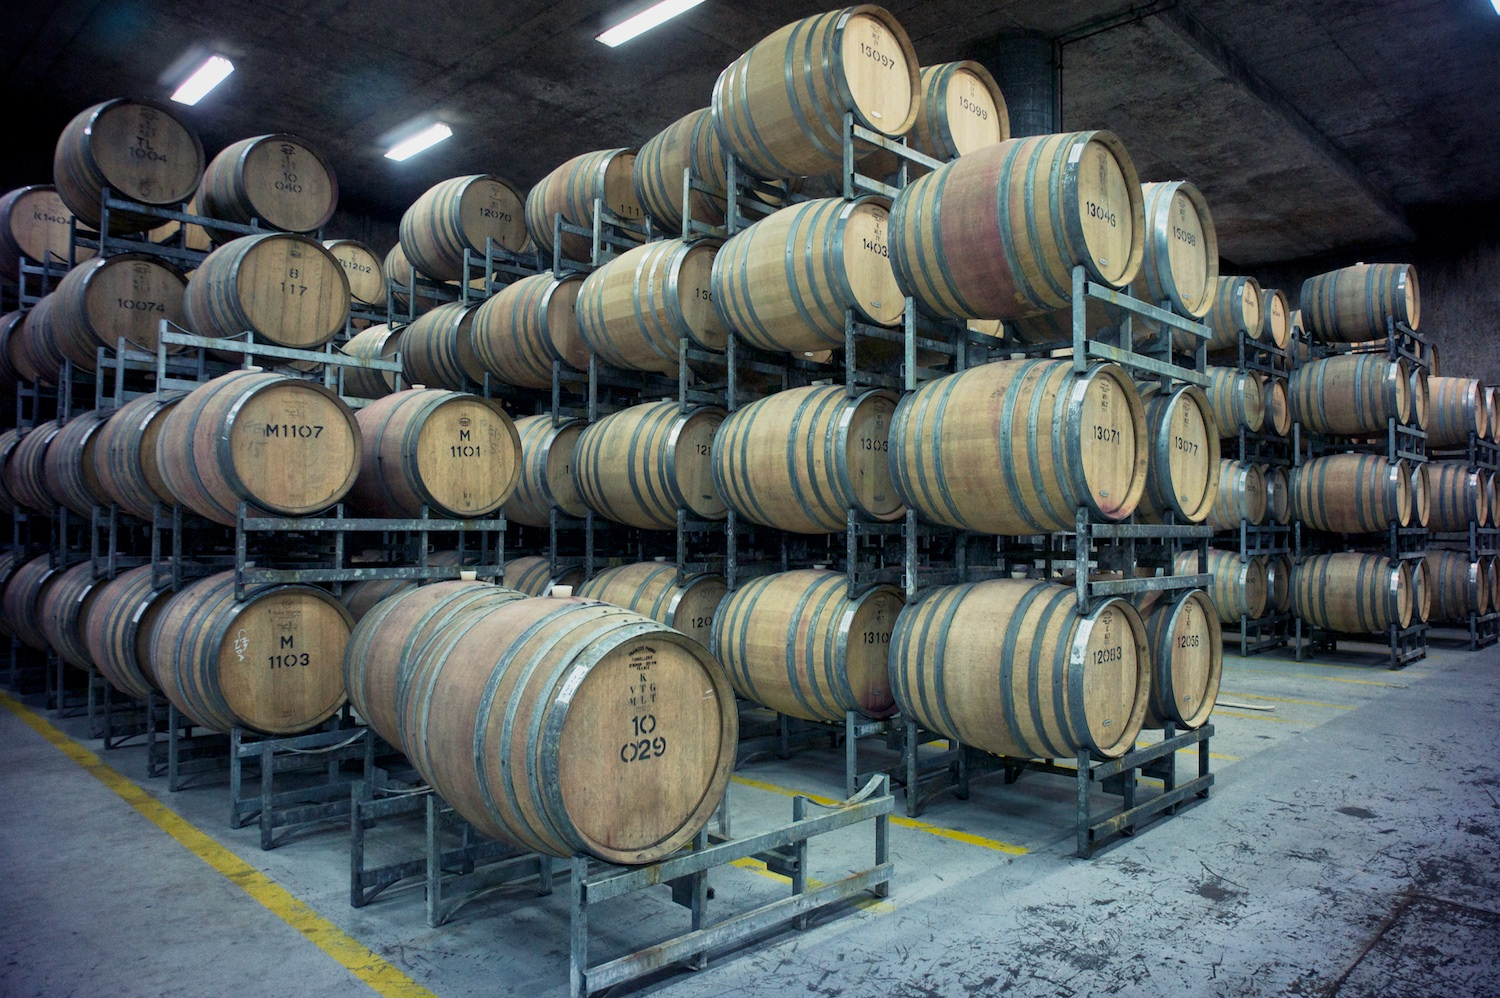 Tasting from the Barrels